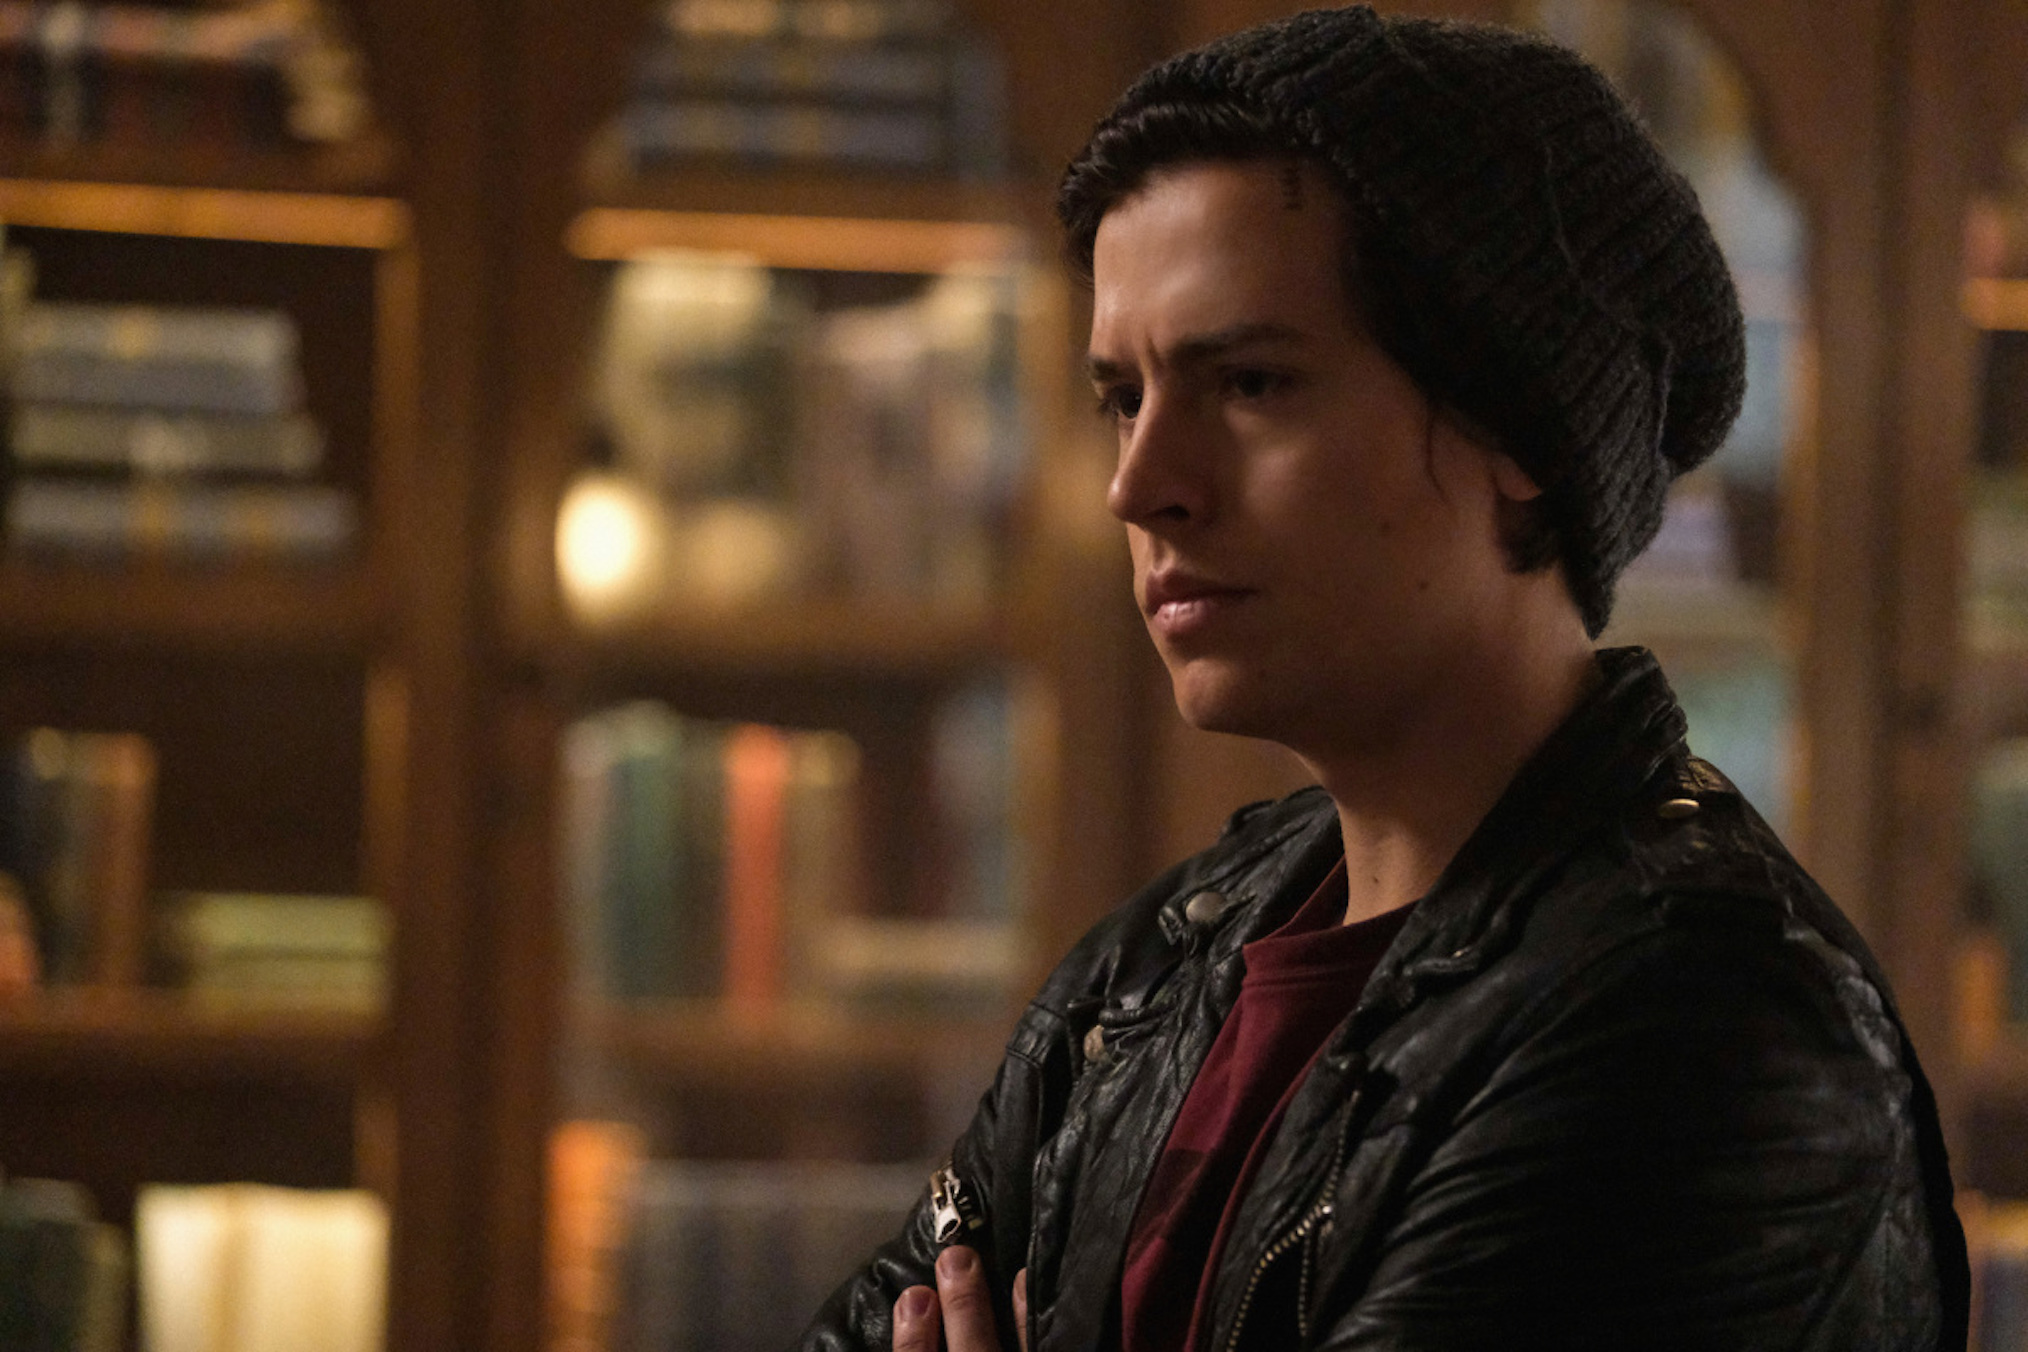 Cole Sprouse Riverdale Season 4 Episode 16 Jughead